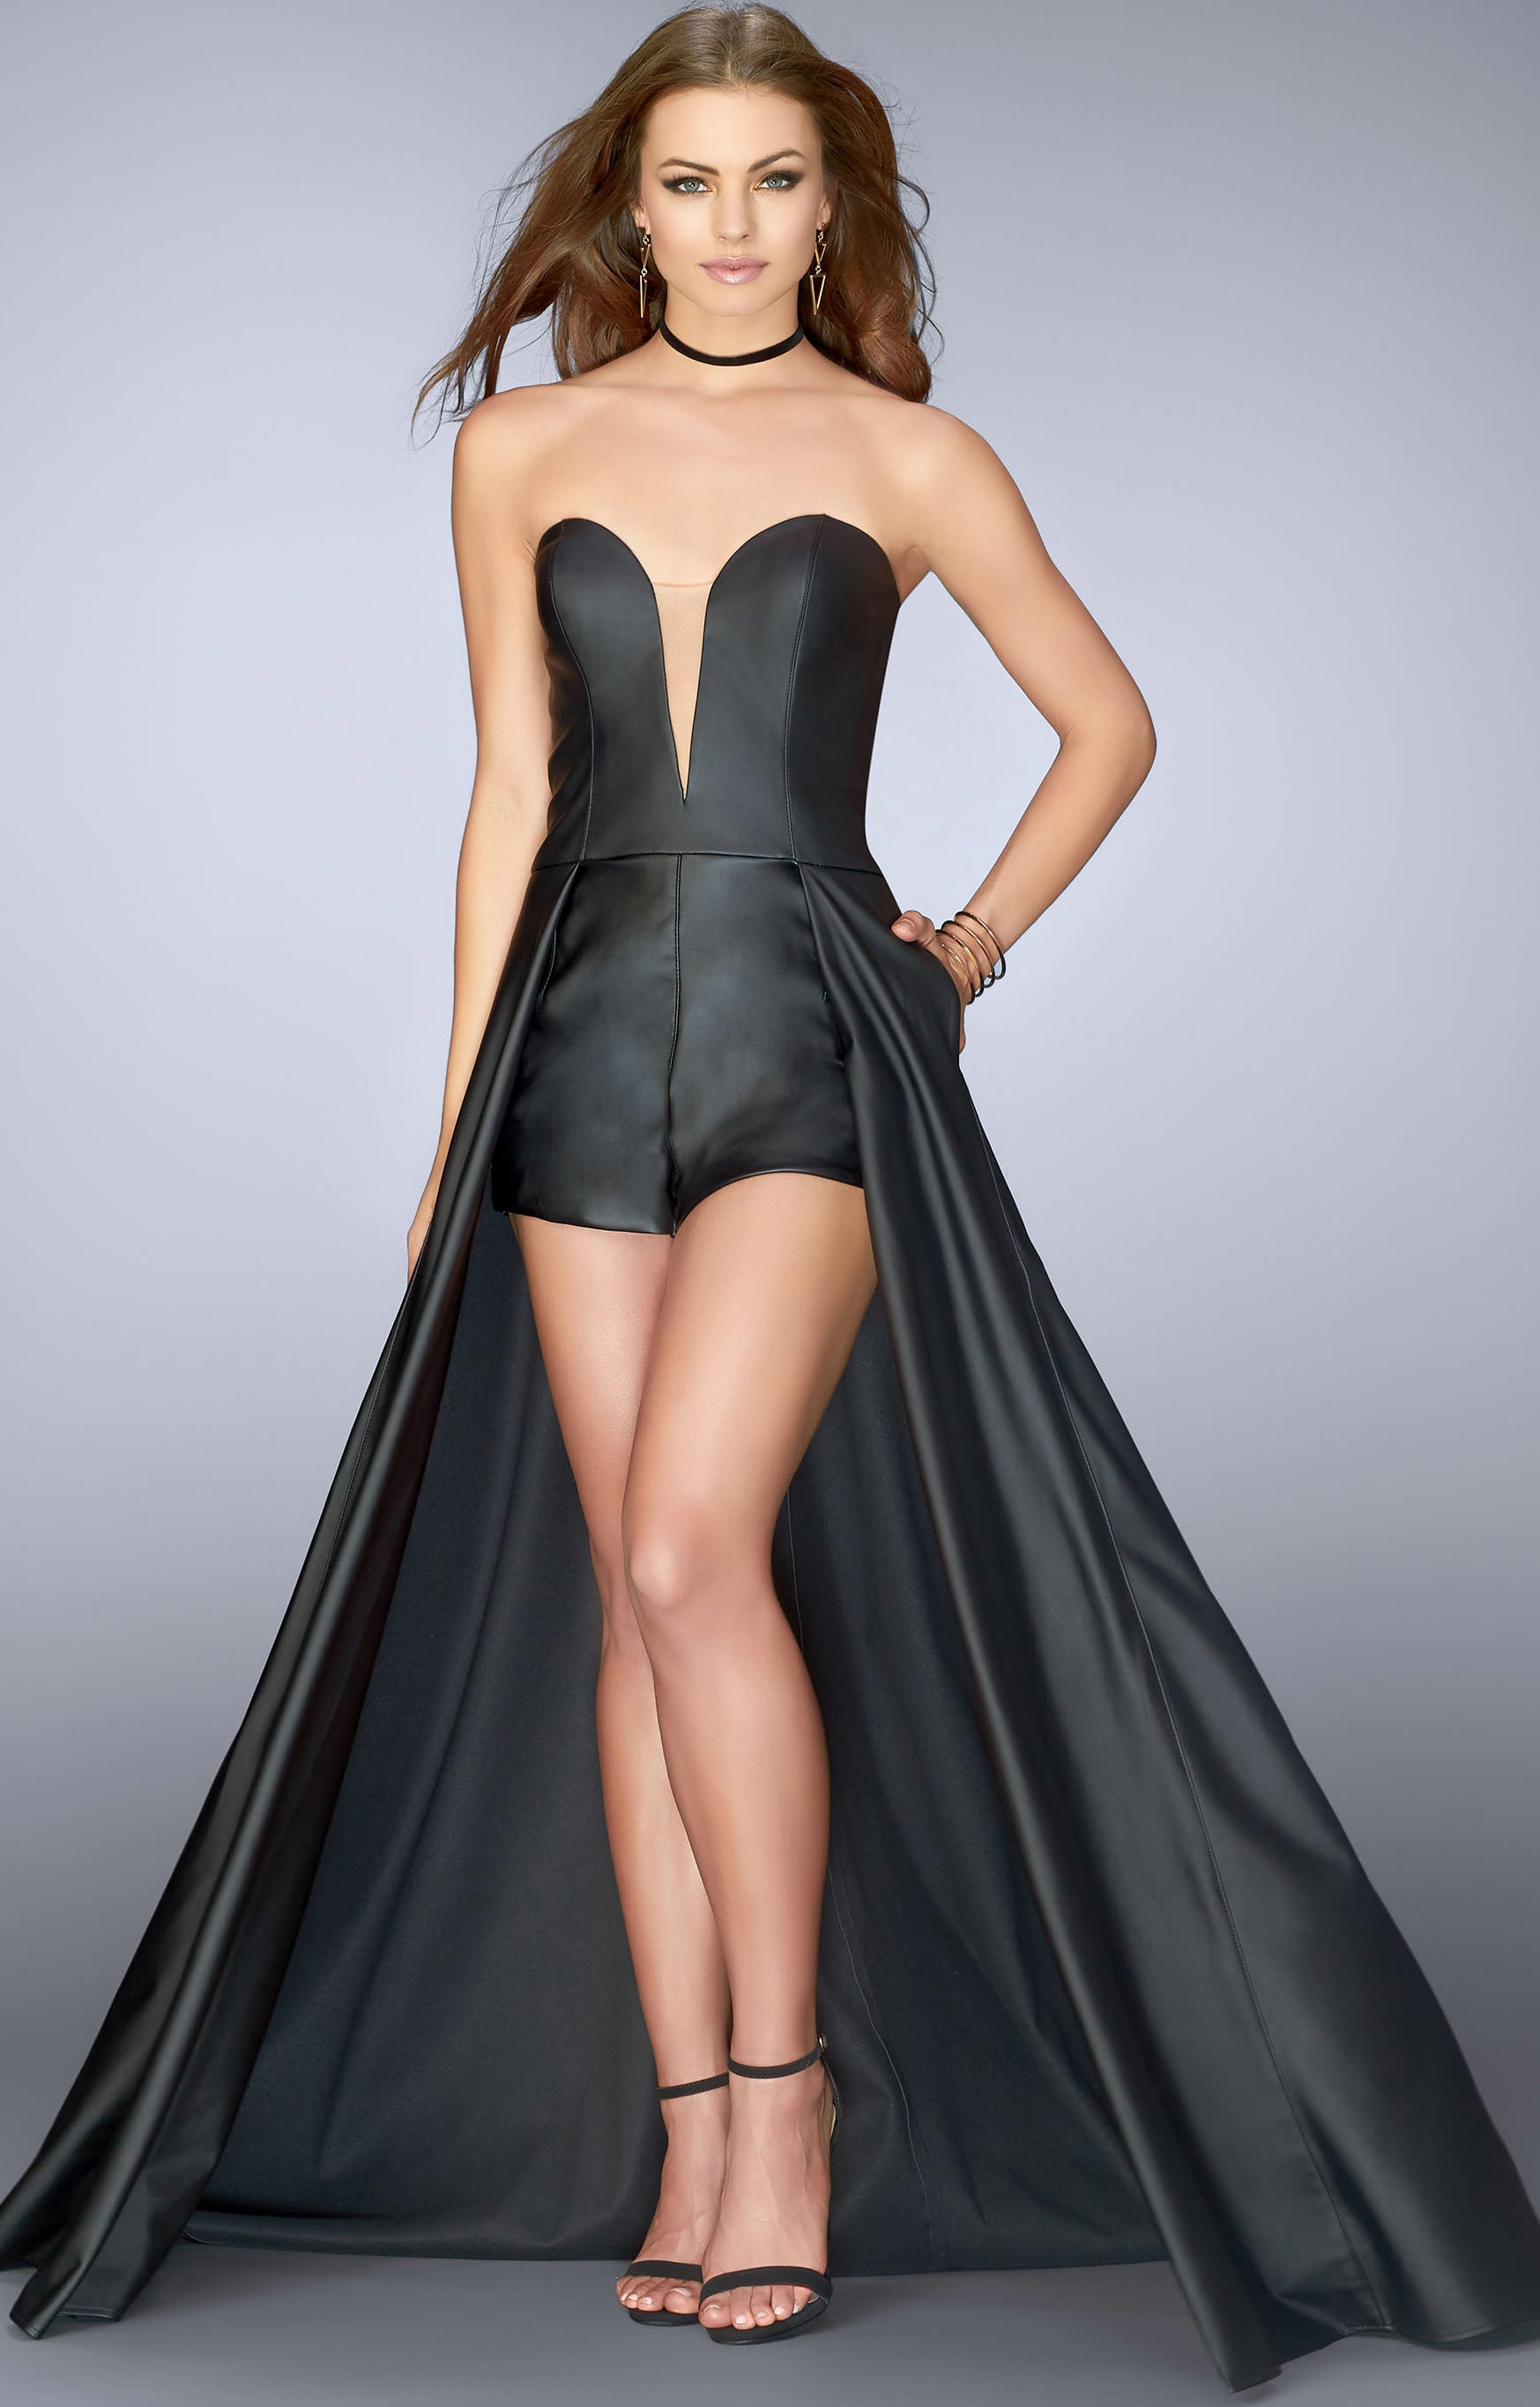 71f9f4fdb6b9 La Femme 24729 Shorts With Cape Formal. 6405 High Neckline Shorts W Overlay  Prom Dresses. Long And Short Prom Dresses Gowns 2019 Rachel Allan